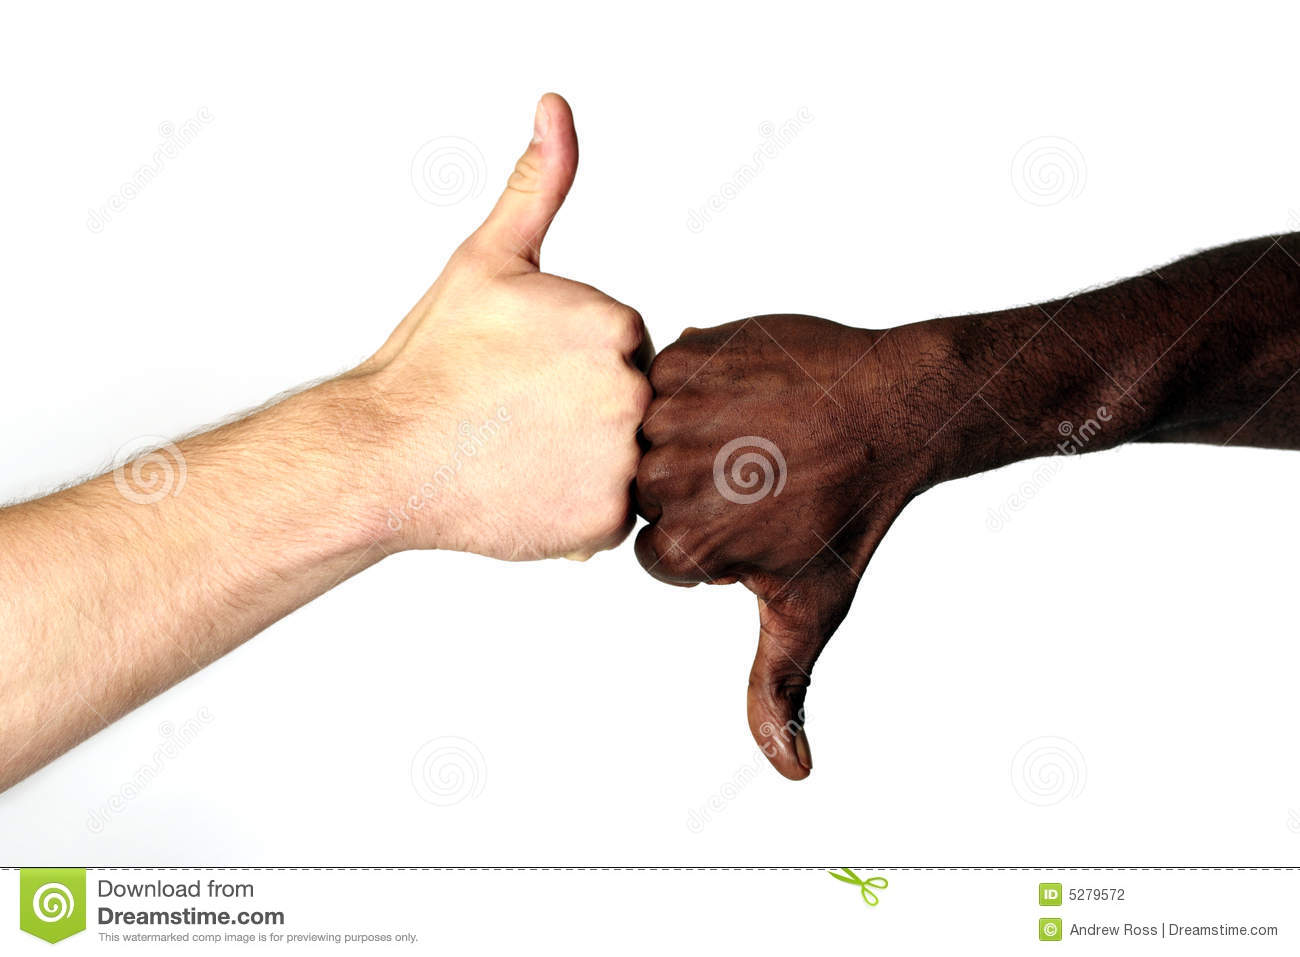 Black and White males with thumbs up and down.: www.dreamstime.com/stock-photography-good-bad-image5279572